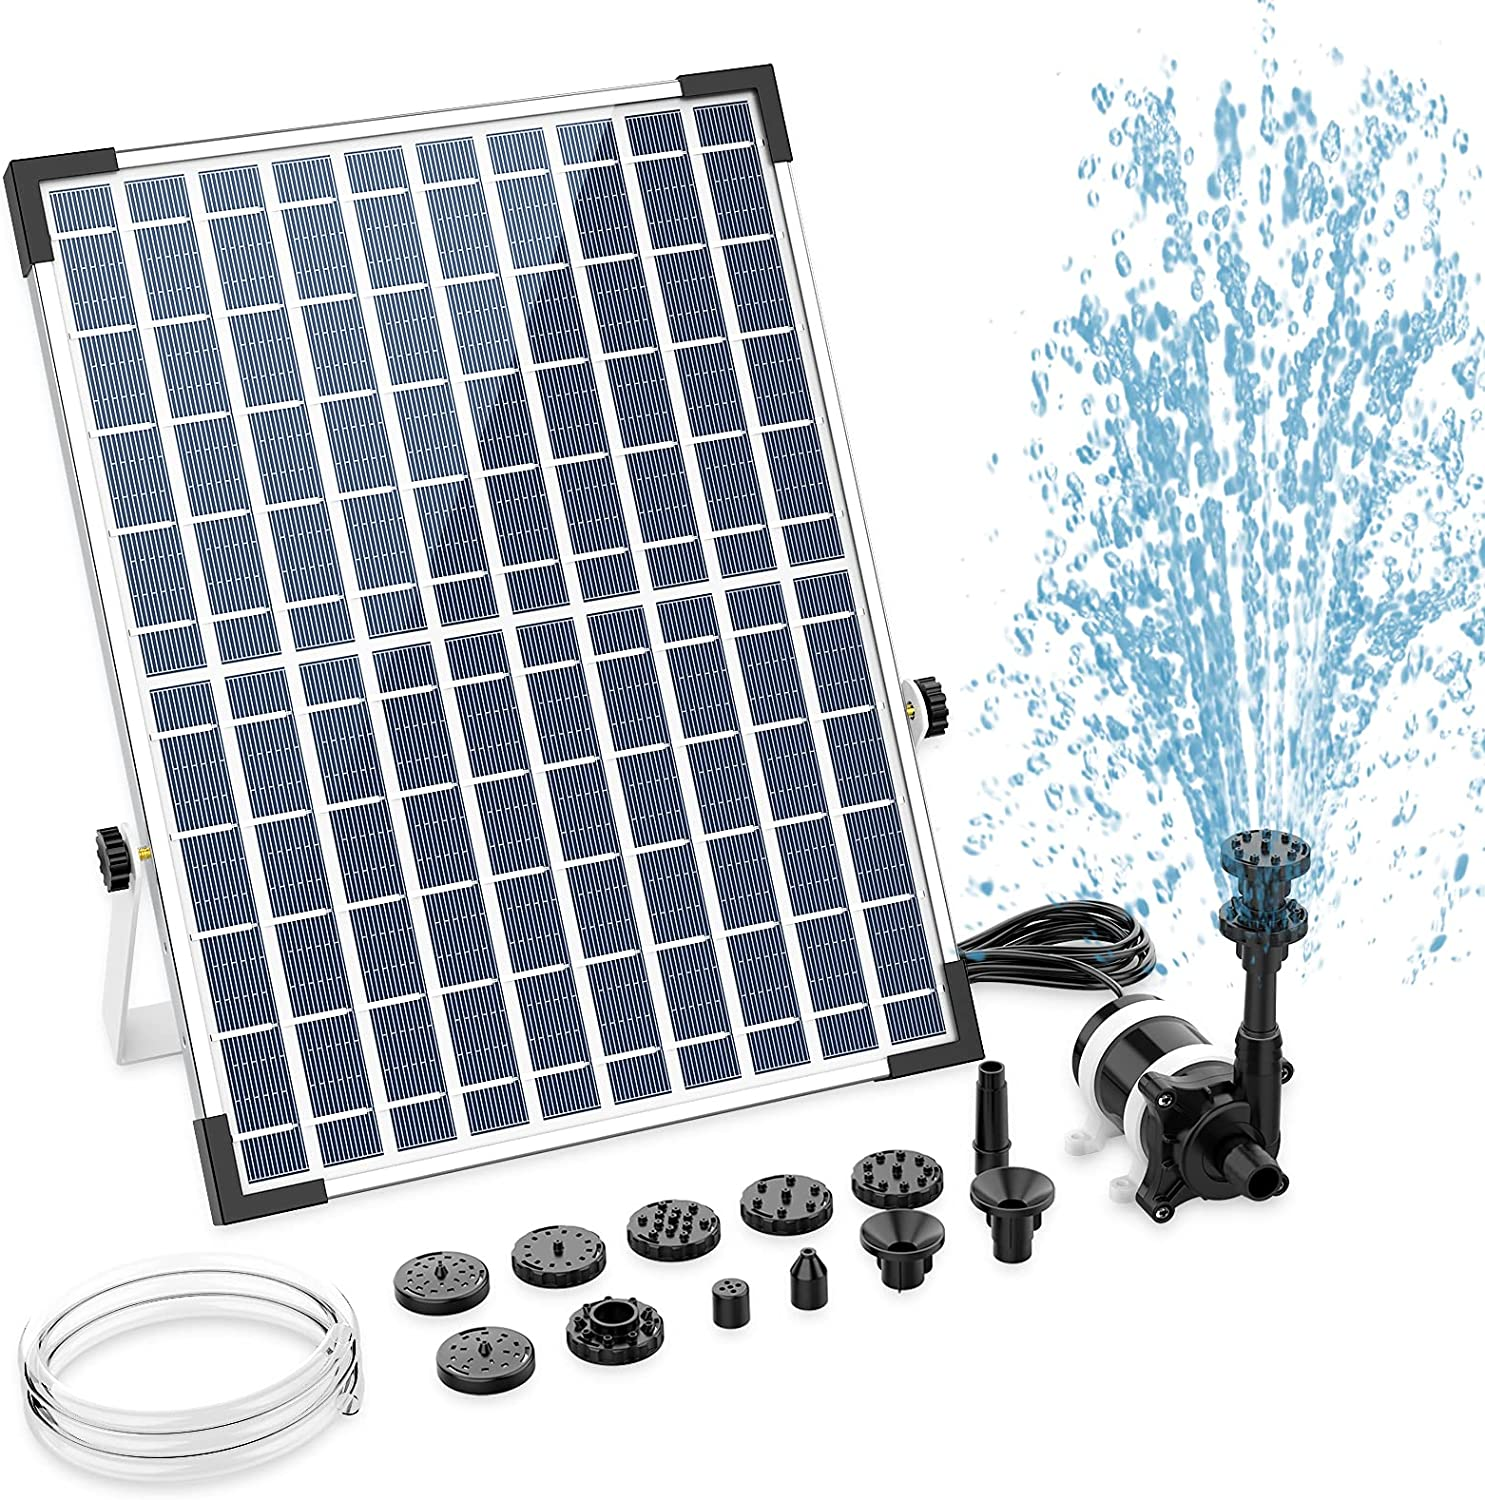 AISITIN 12W Powerful Solar New arrival outlet Pump w Fountain Water